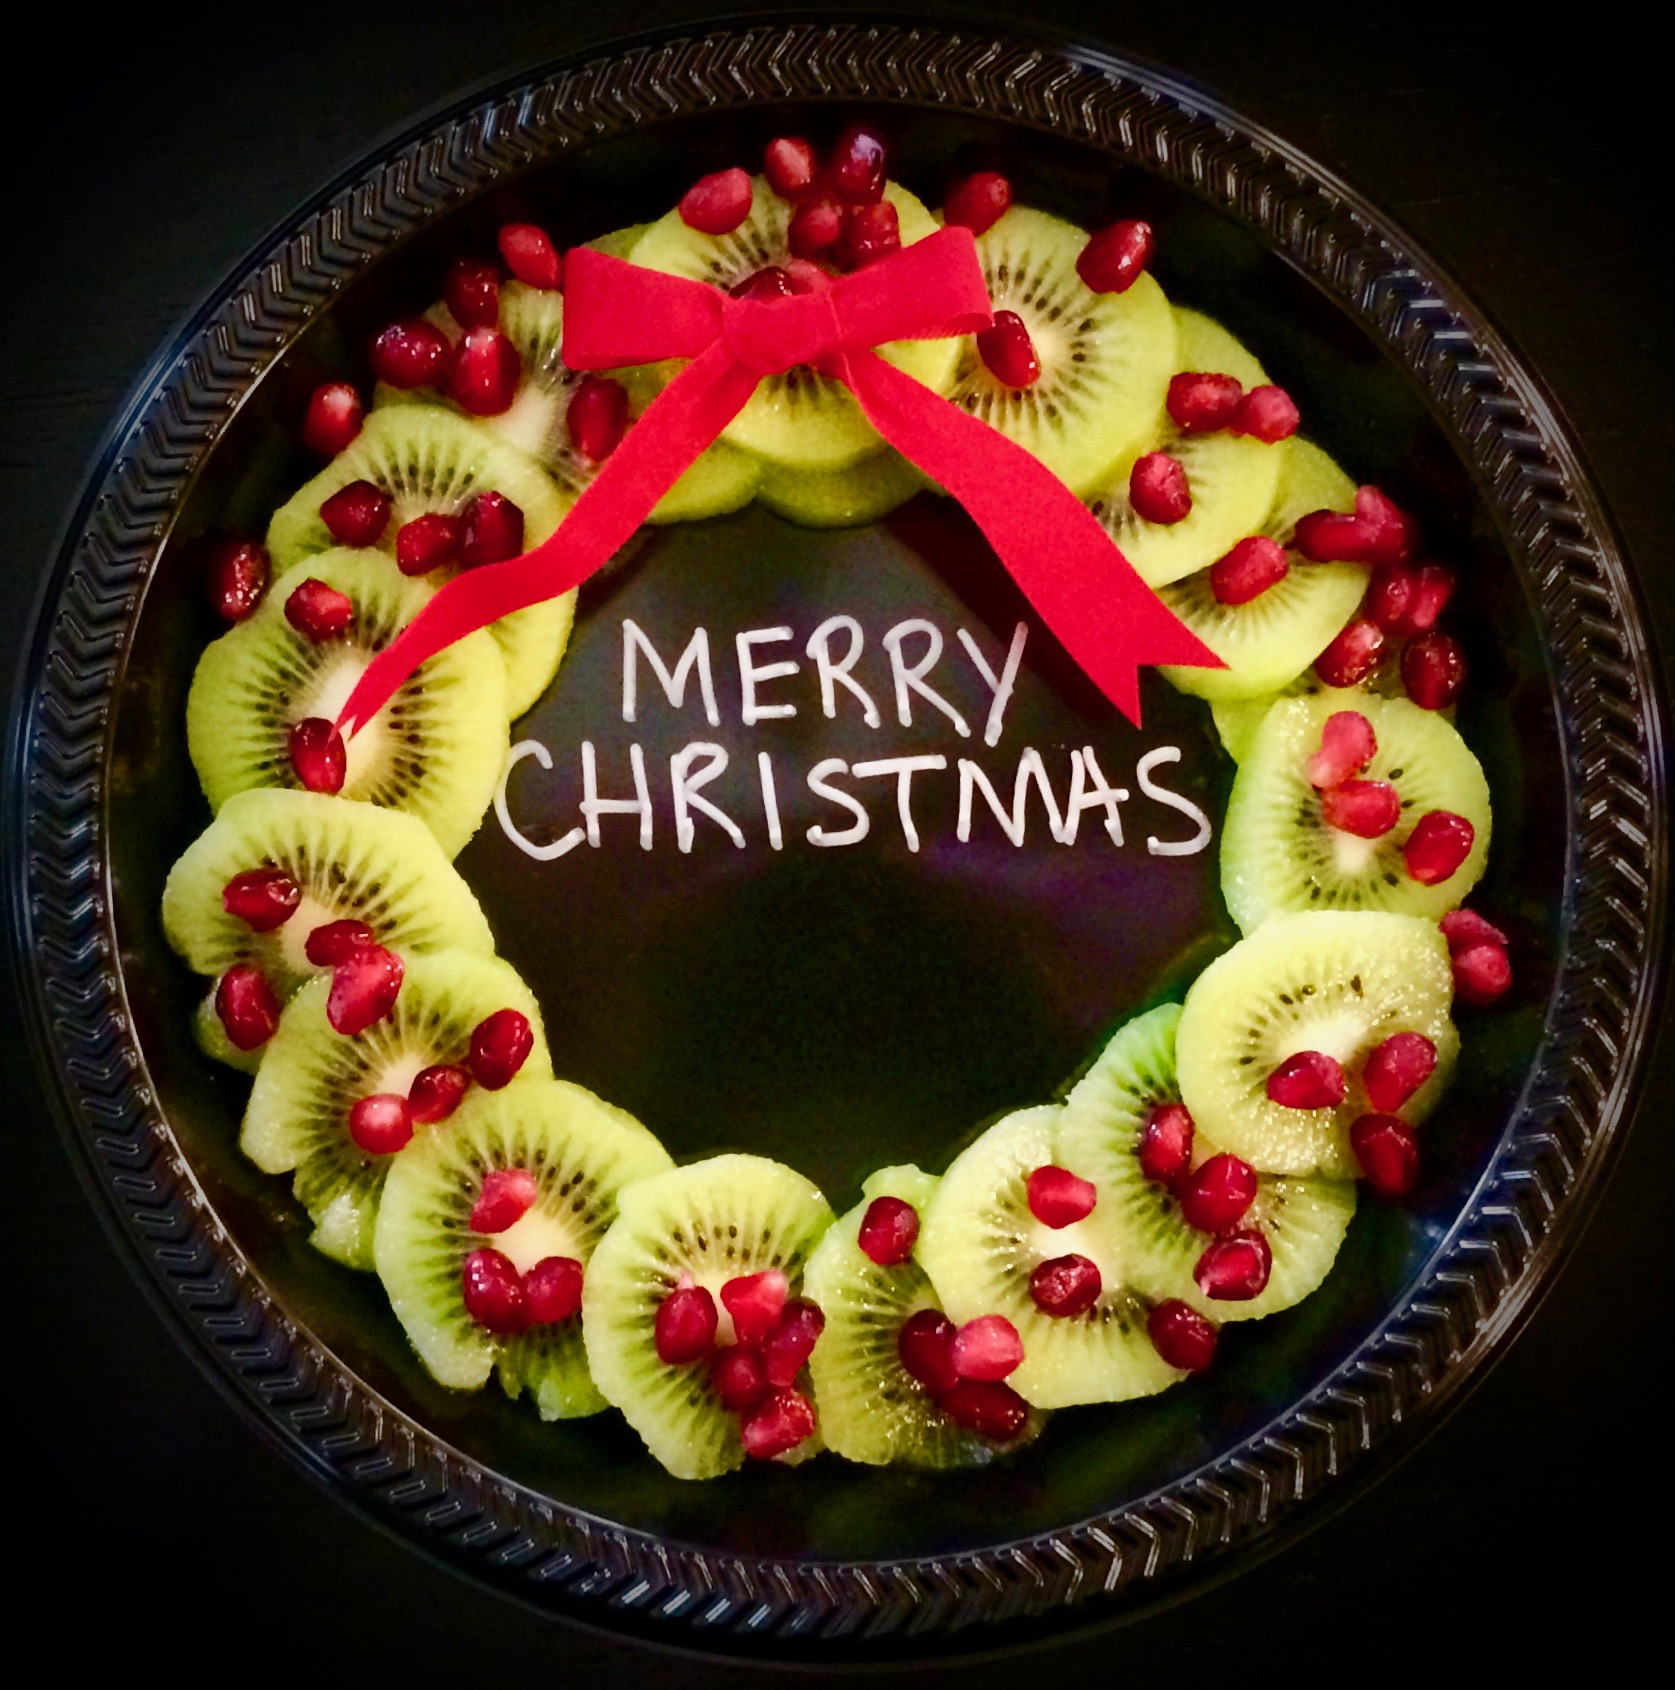 Why not give a HEALTHY alternative to traditional Christmas goodie plates this year.